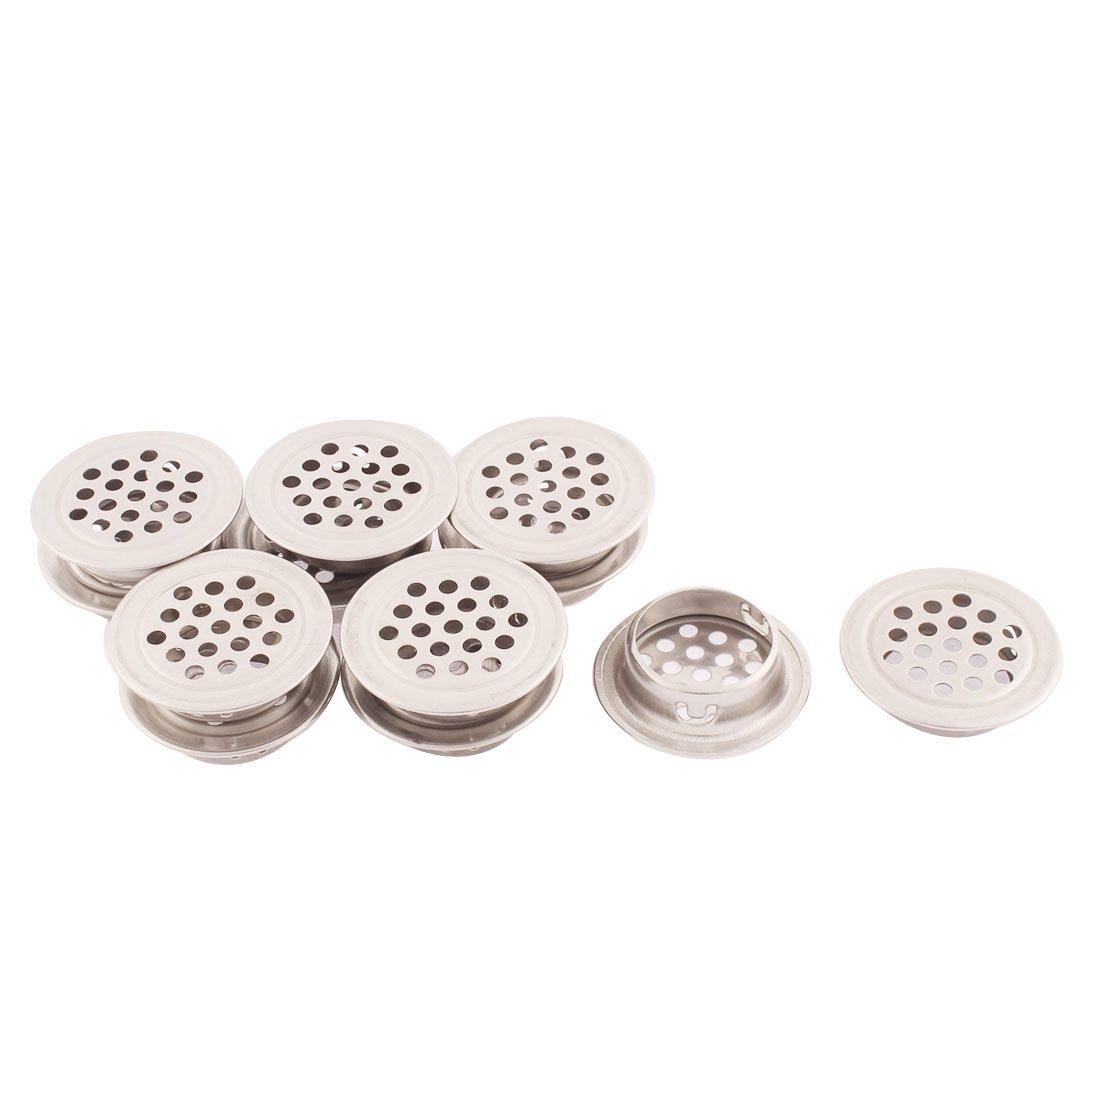 35mm Diameter Flat Metal Cabinet Air Vent Mesh Hole Louver 12pcs